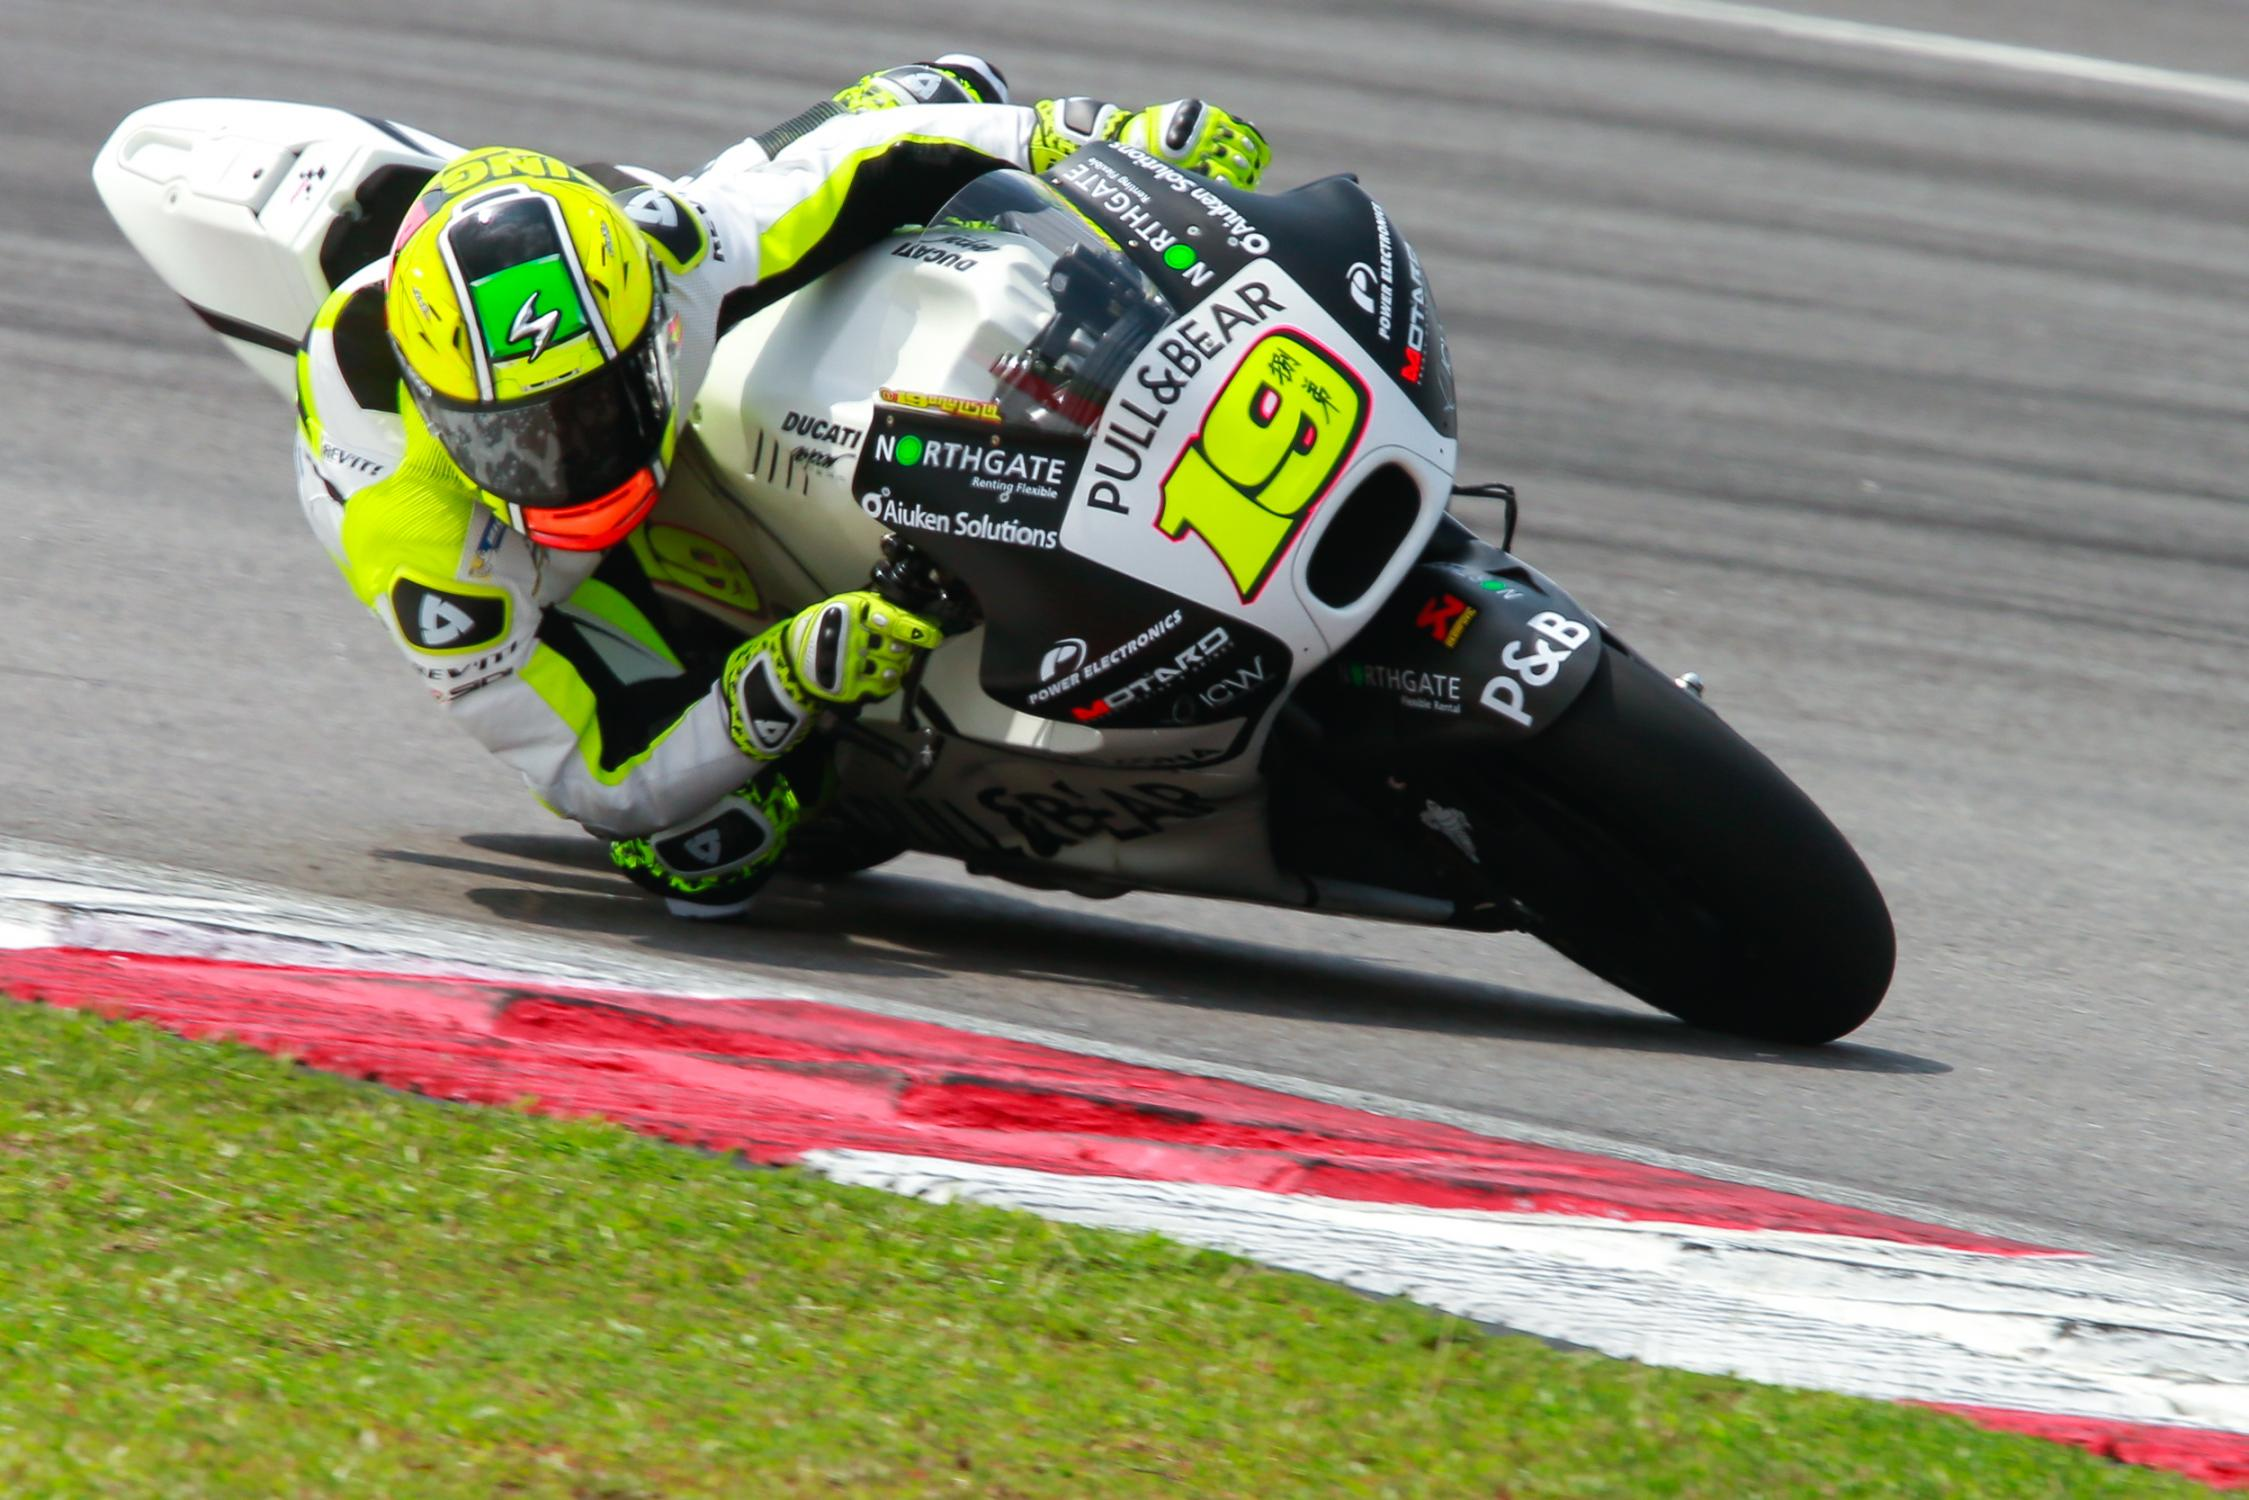 [MotoGP] Test Sepang 19-alvaro-bautista-esp_gp_7752.gallery_full_top_fullscreen